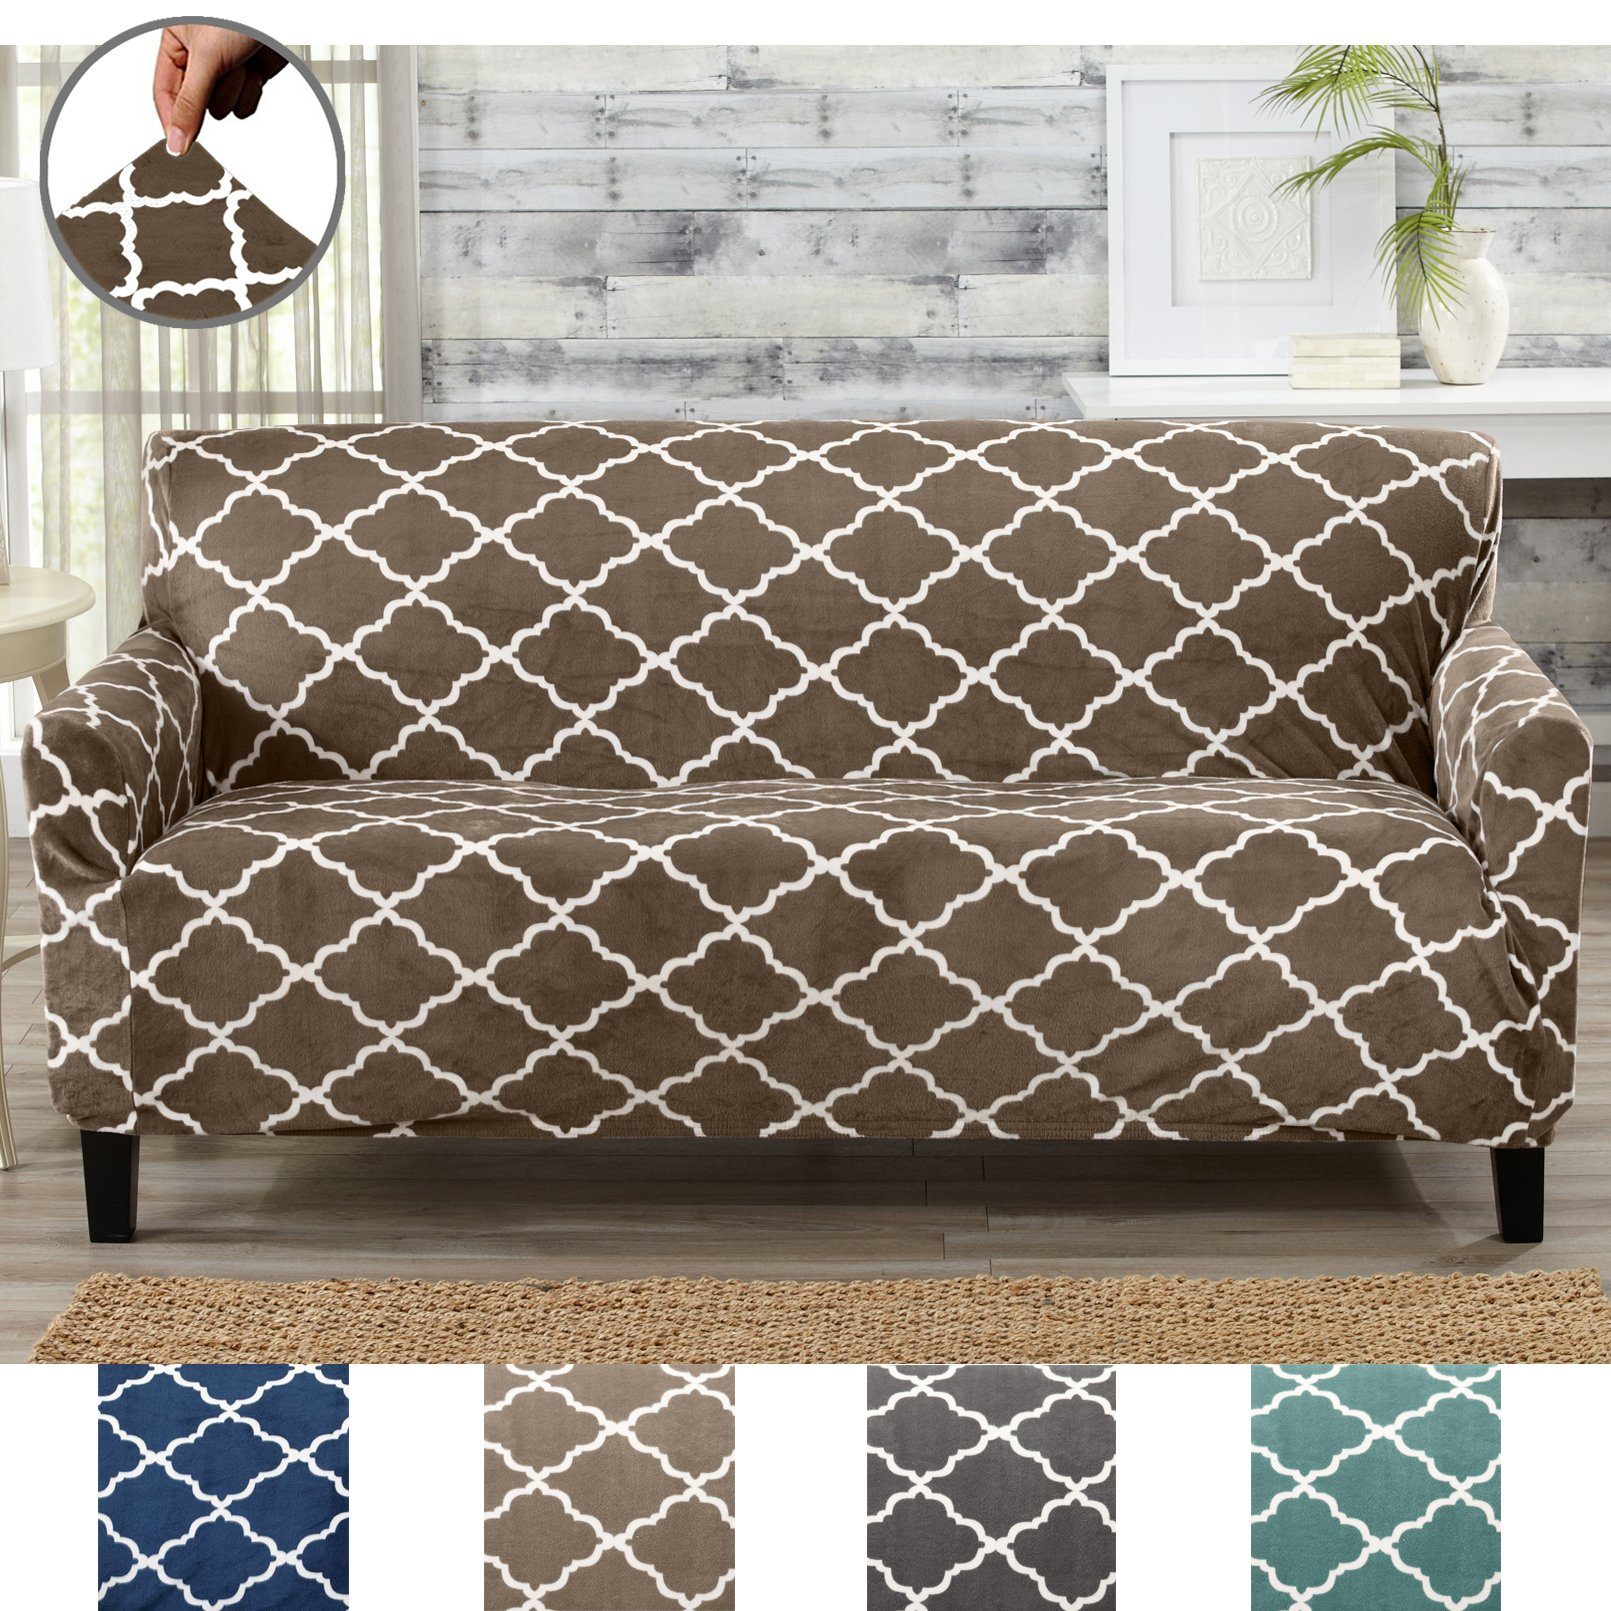 Great Bay Home The Pet Protector.Modern Velvet Plush Strapless Slipcover. Form Fit Stretch, Stylish Furniture Shield/Protector. Magnolia Collection Strapless Slipcover by Brand. (Sofa, Walnut Brown)